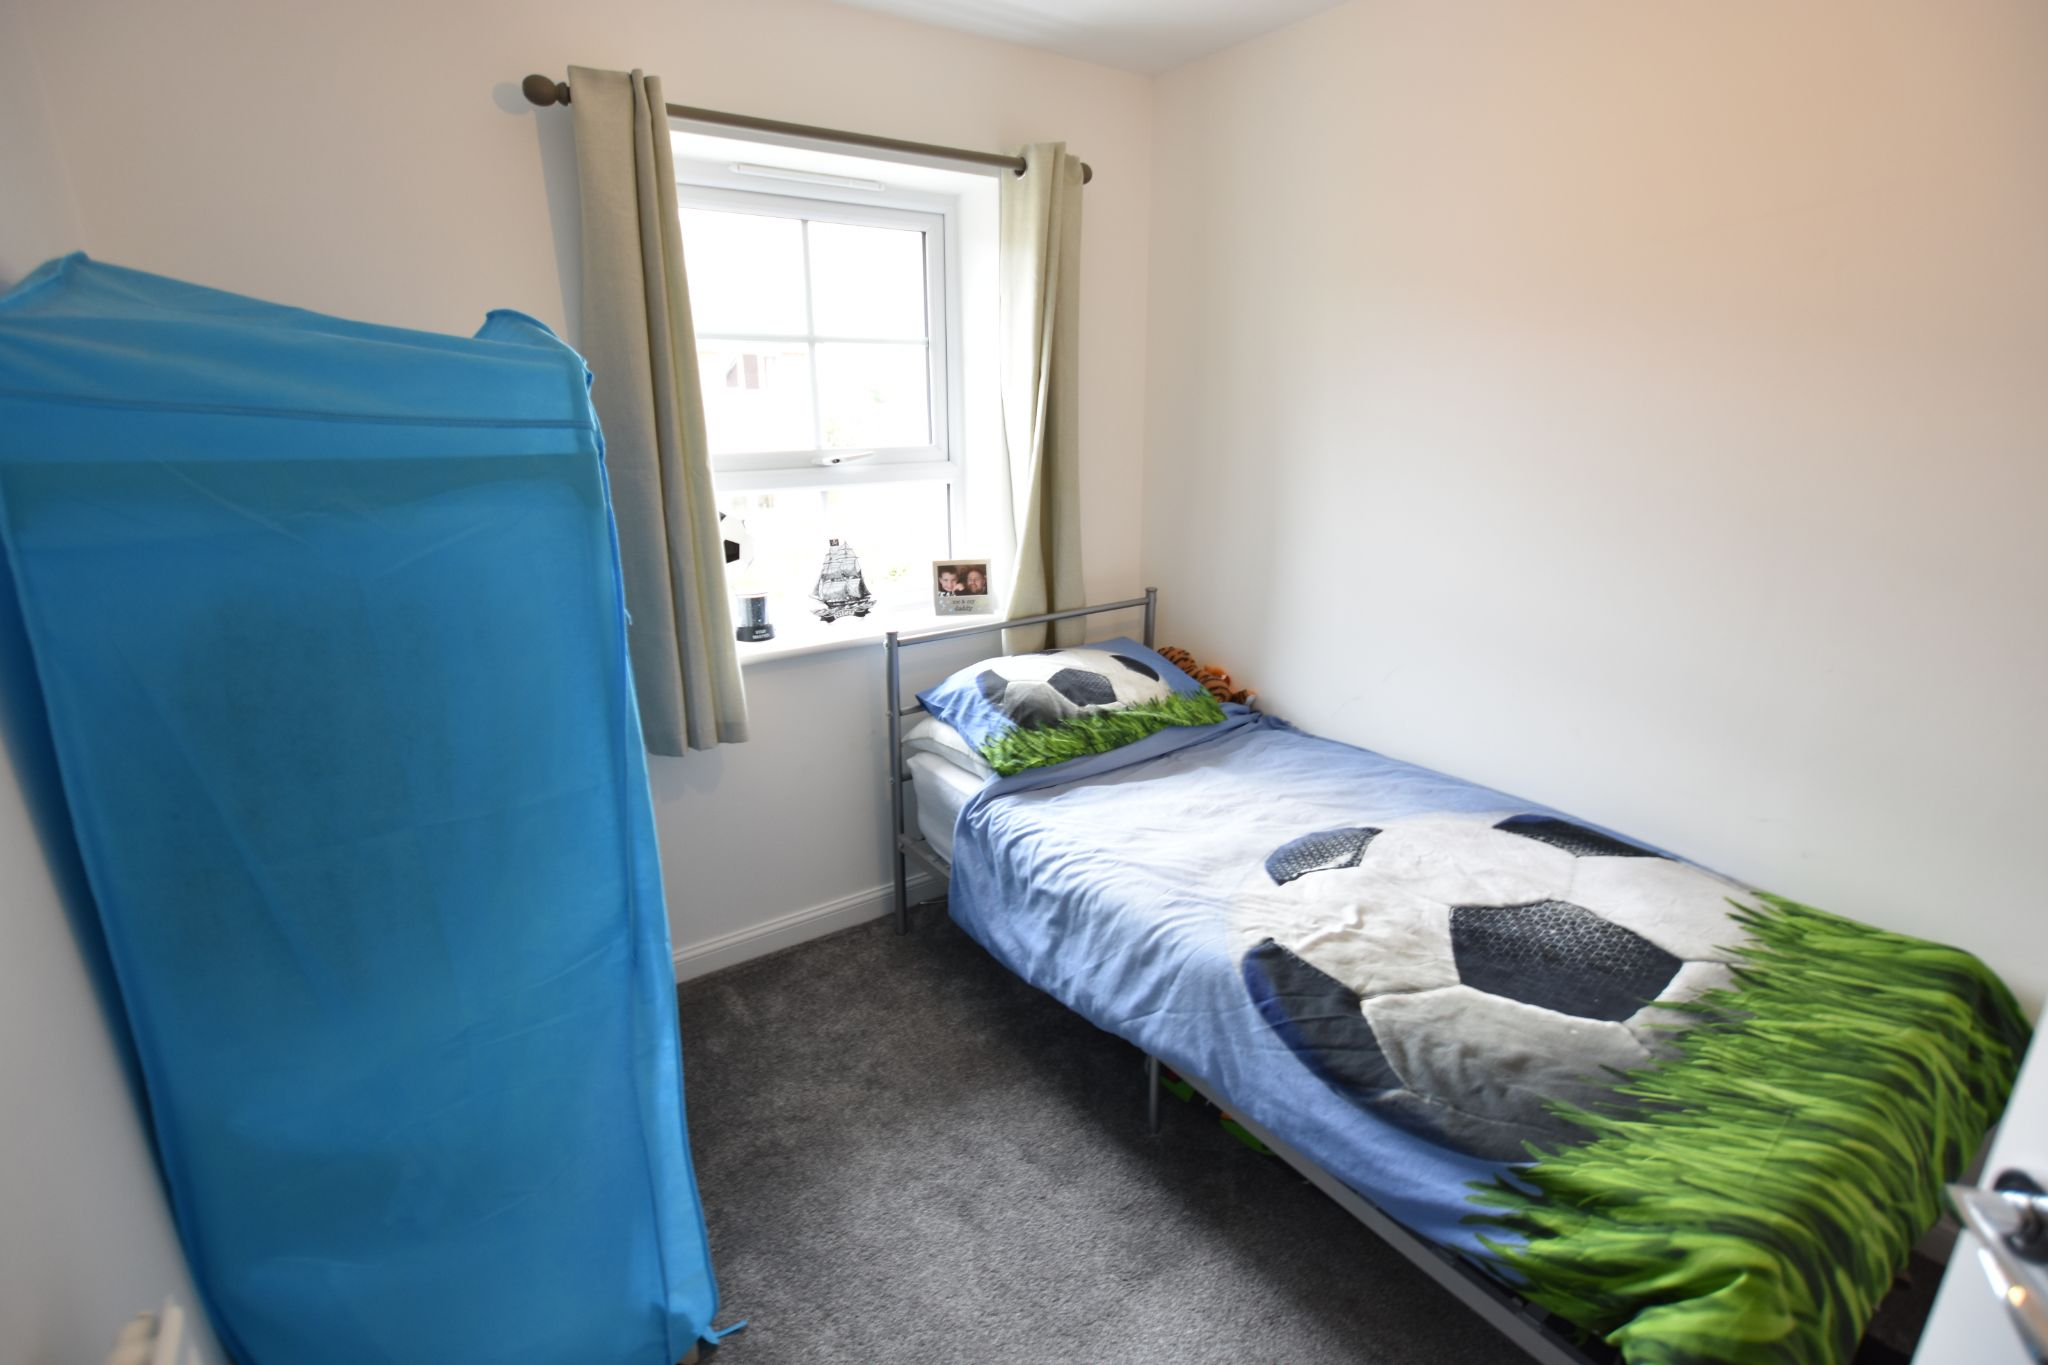 Image 1 of 3 of BEDROOM 2, on Accommodation Comprising for